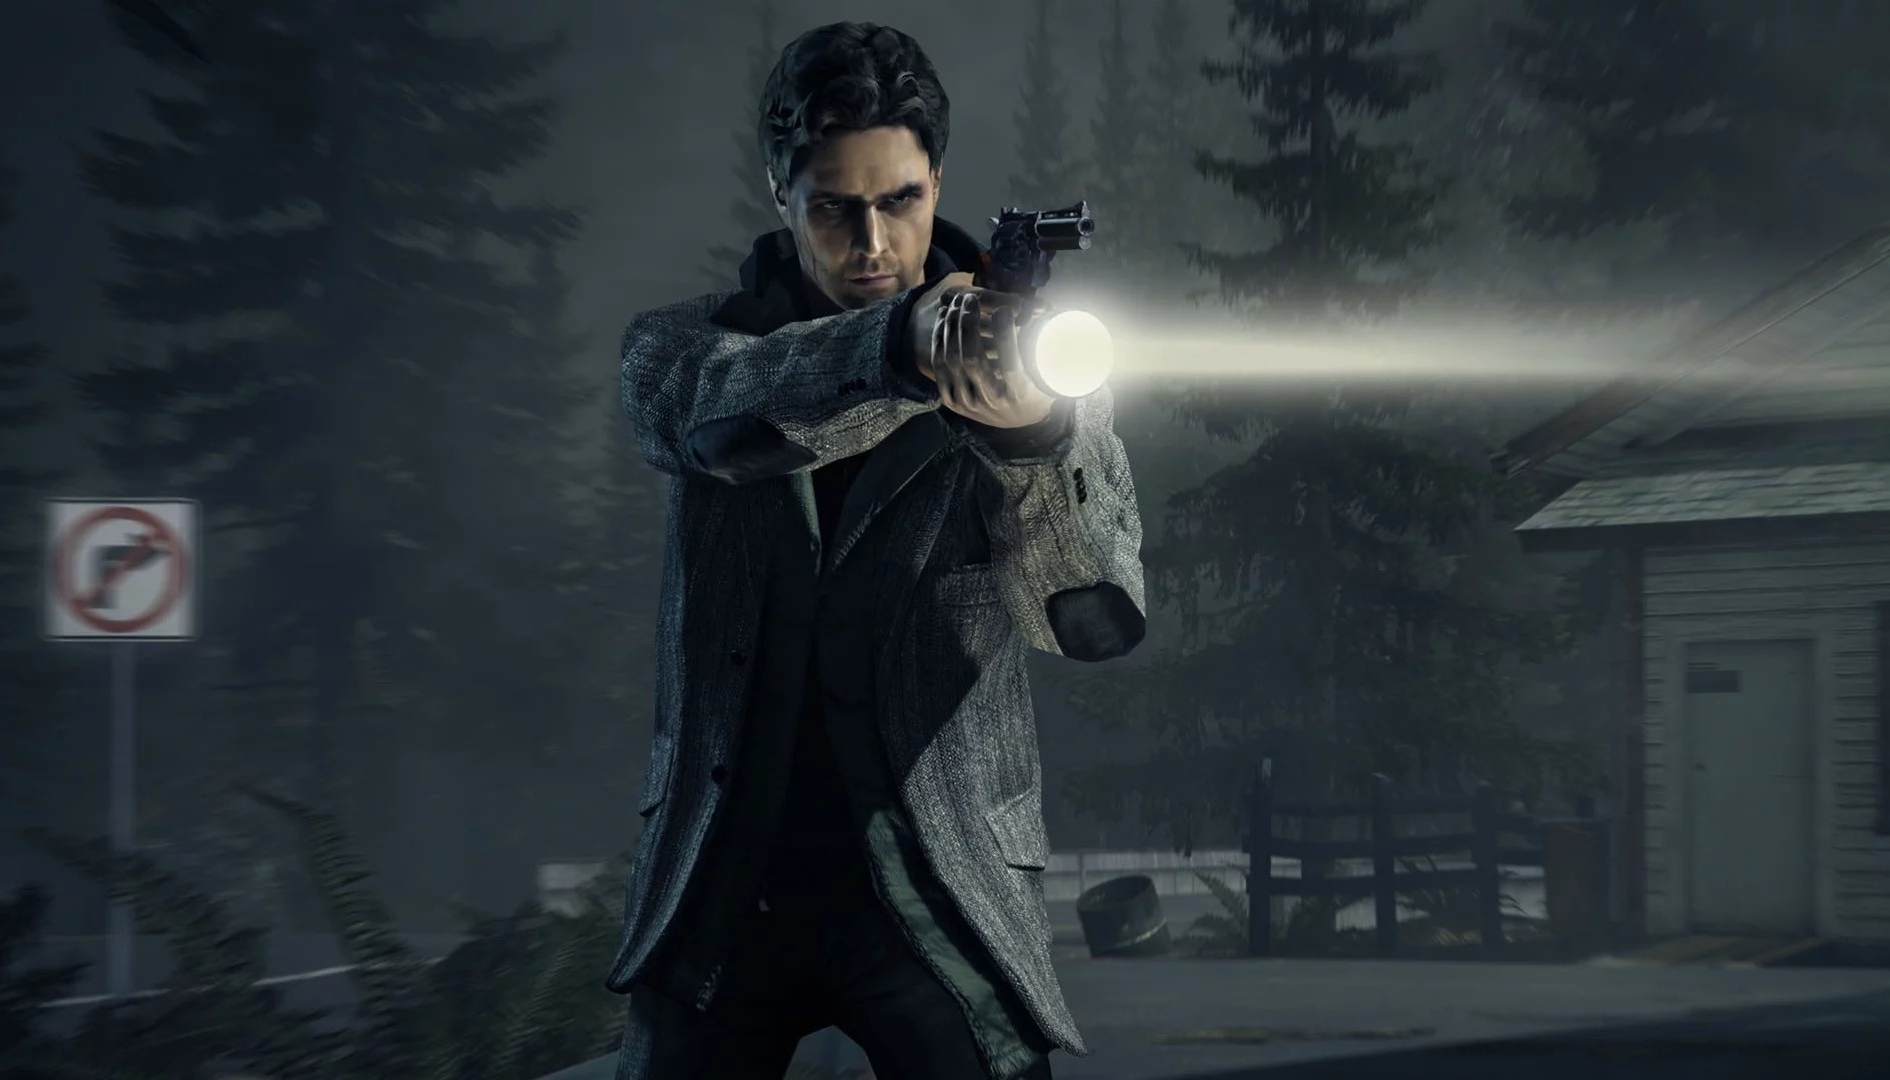 Sony vuole acquisire Remedy, creatore di Alan Wake, secondo un rumor